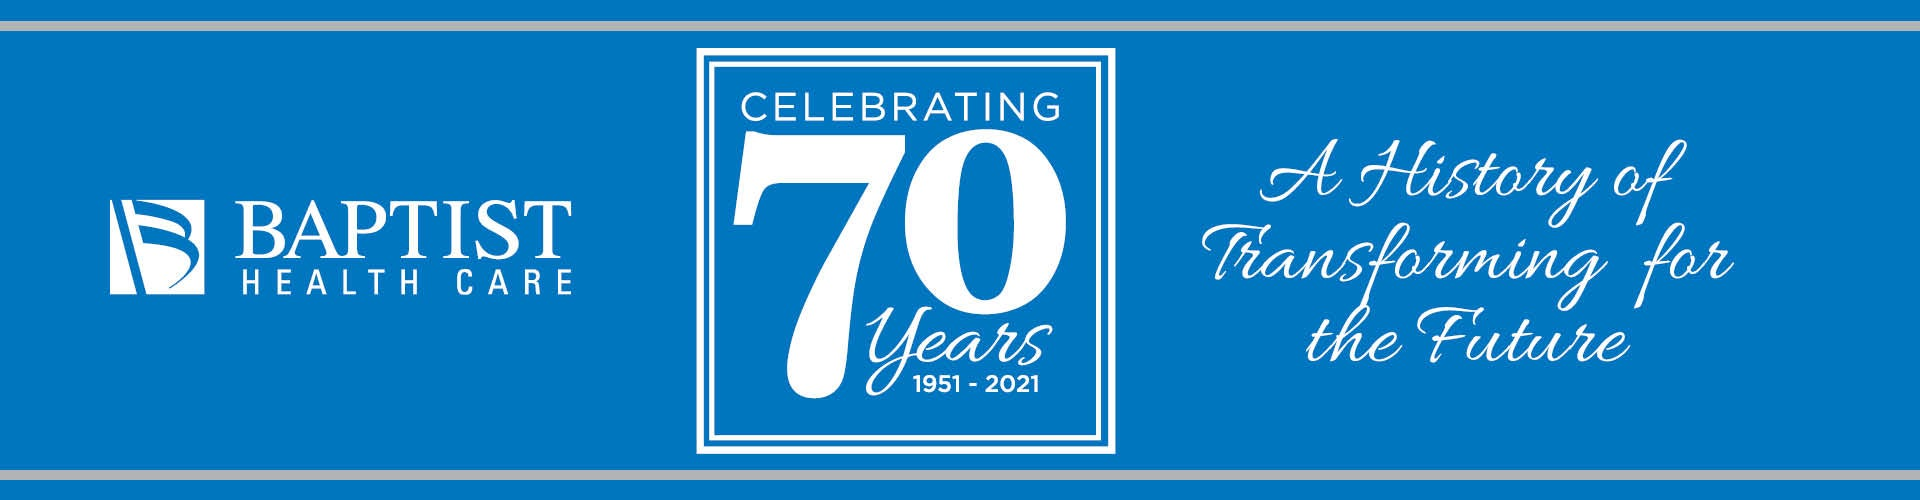 Graphic of Baptist Health Care celebrating 70 years (1951 to 2021) with text saying